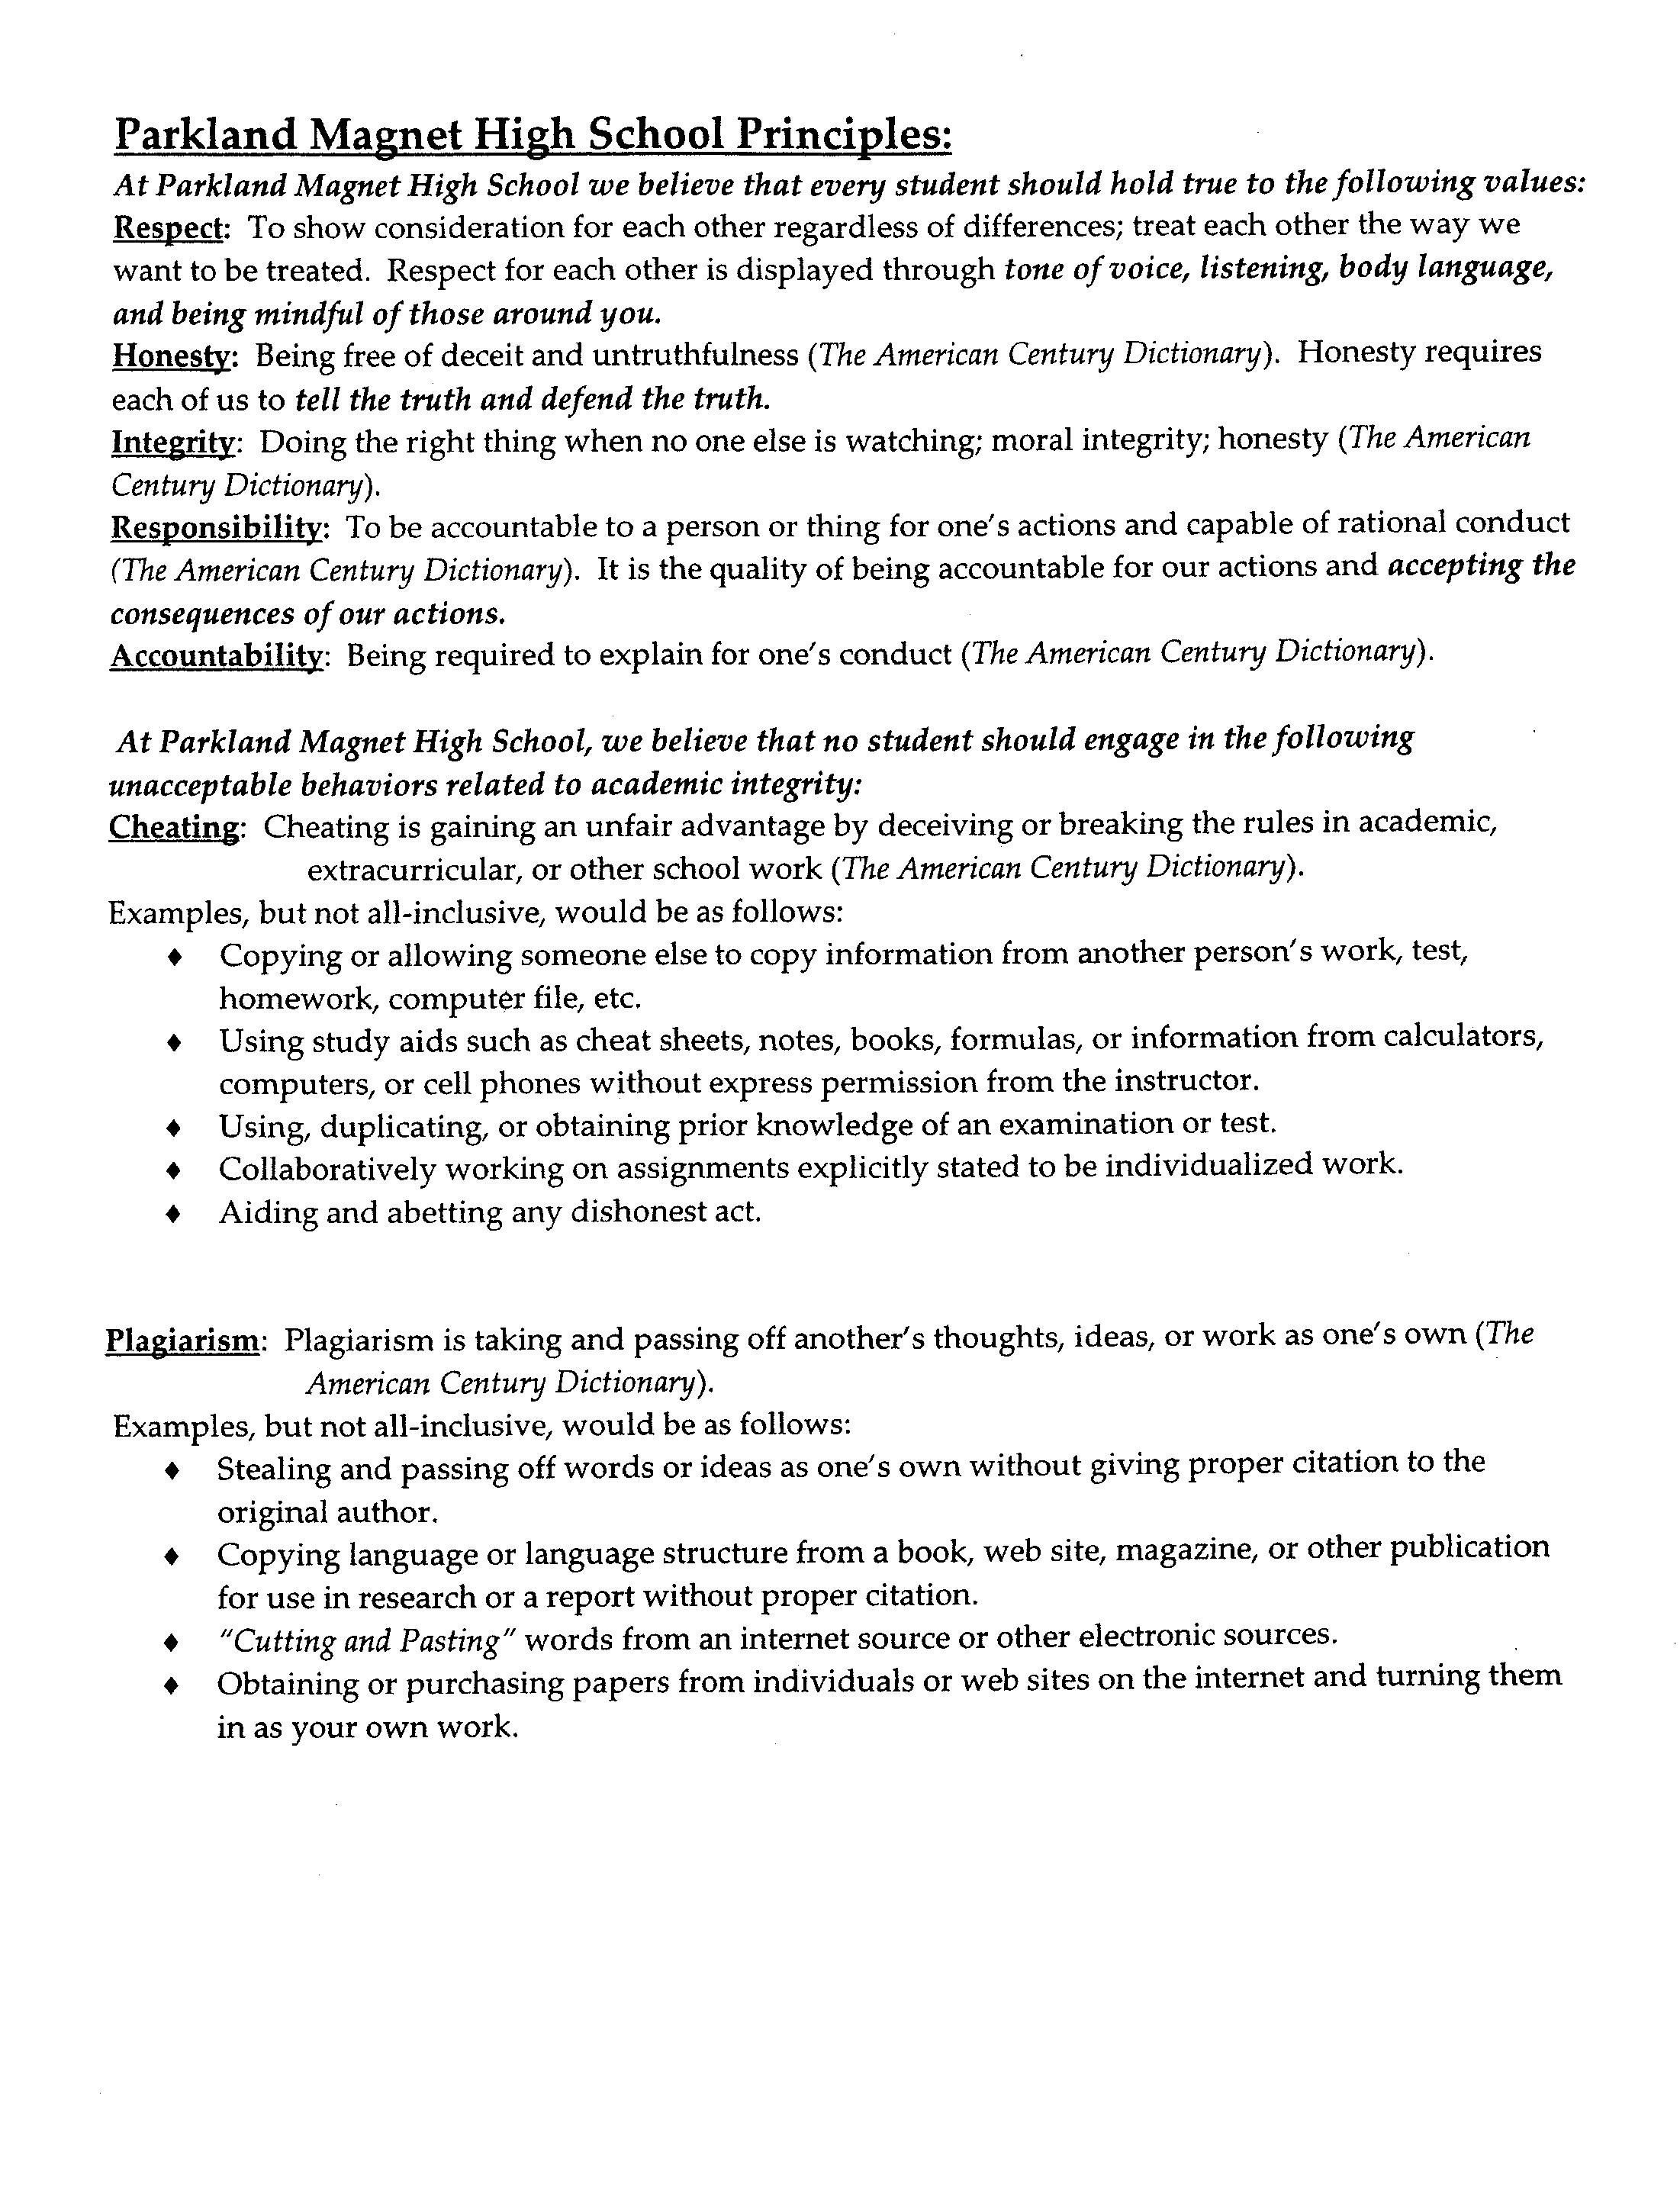 honor code essay page honor code essay julia kittle kamp yh staff honorcode julia